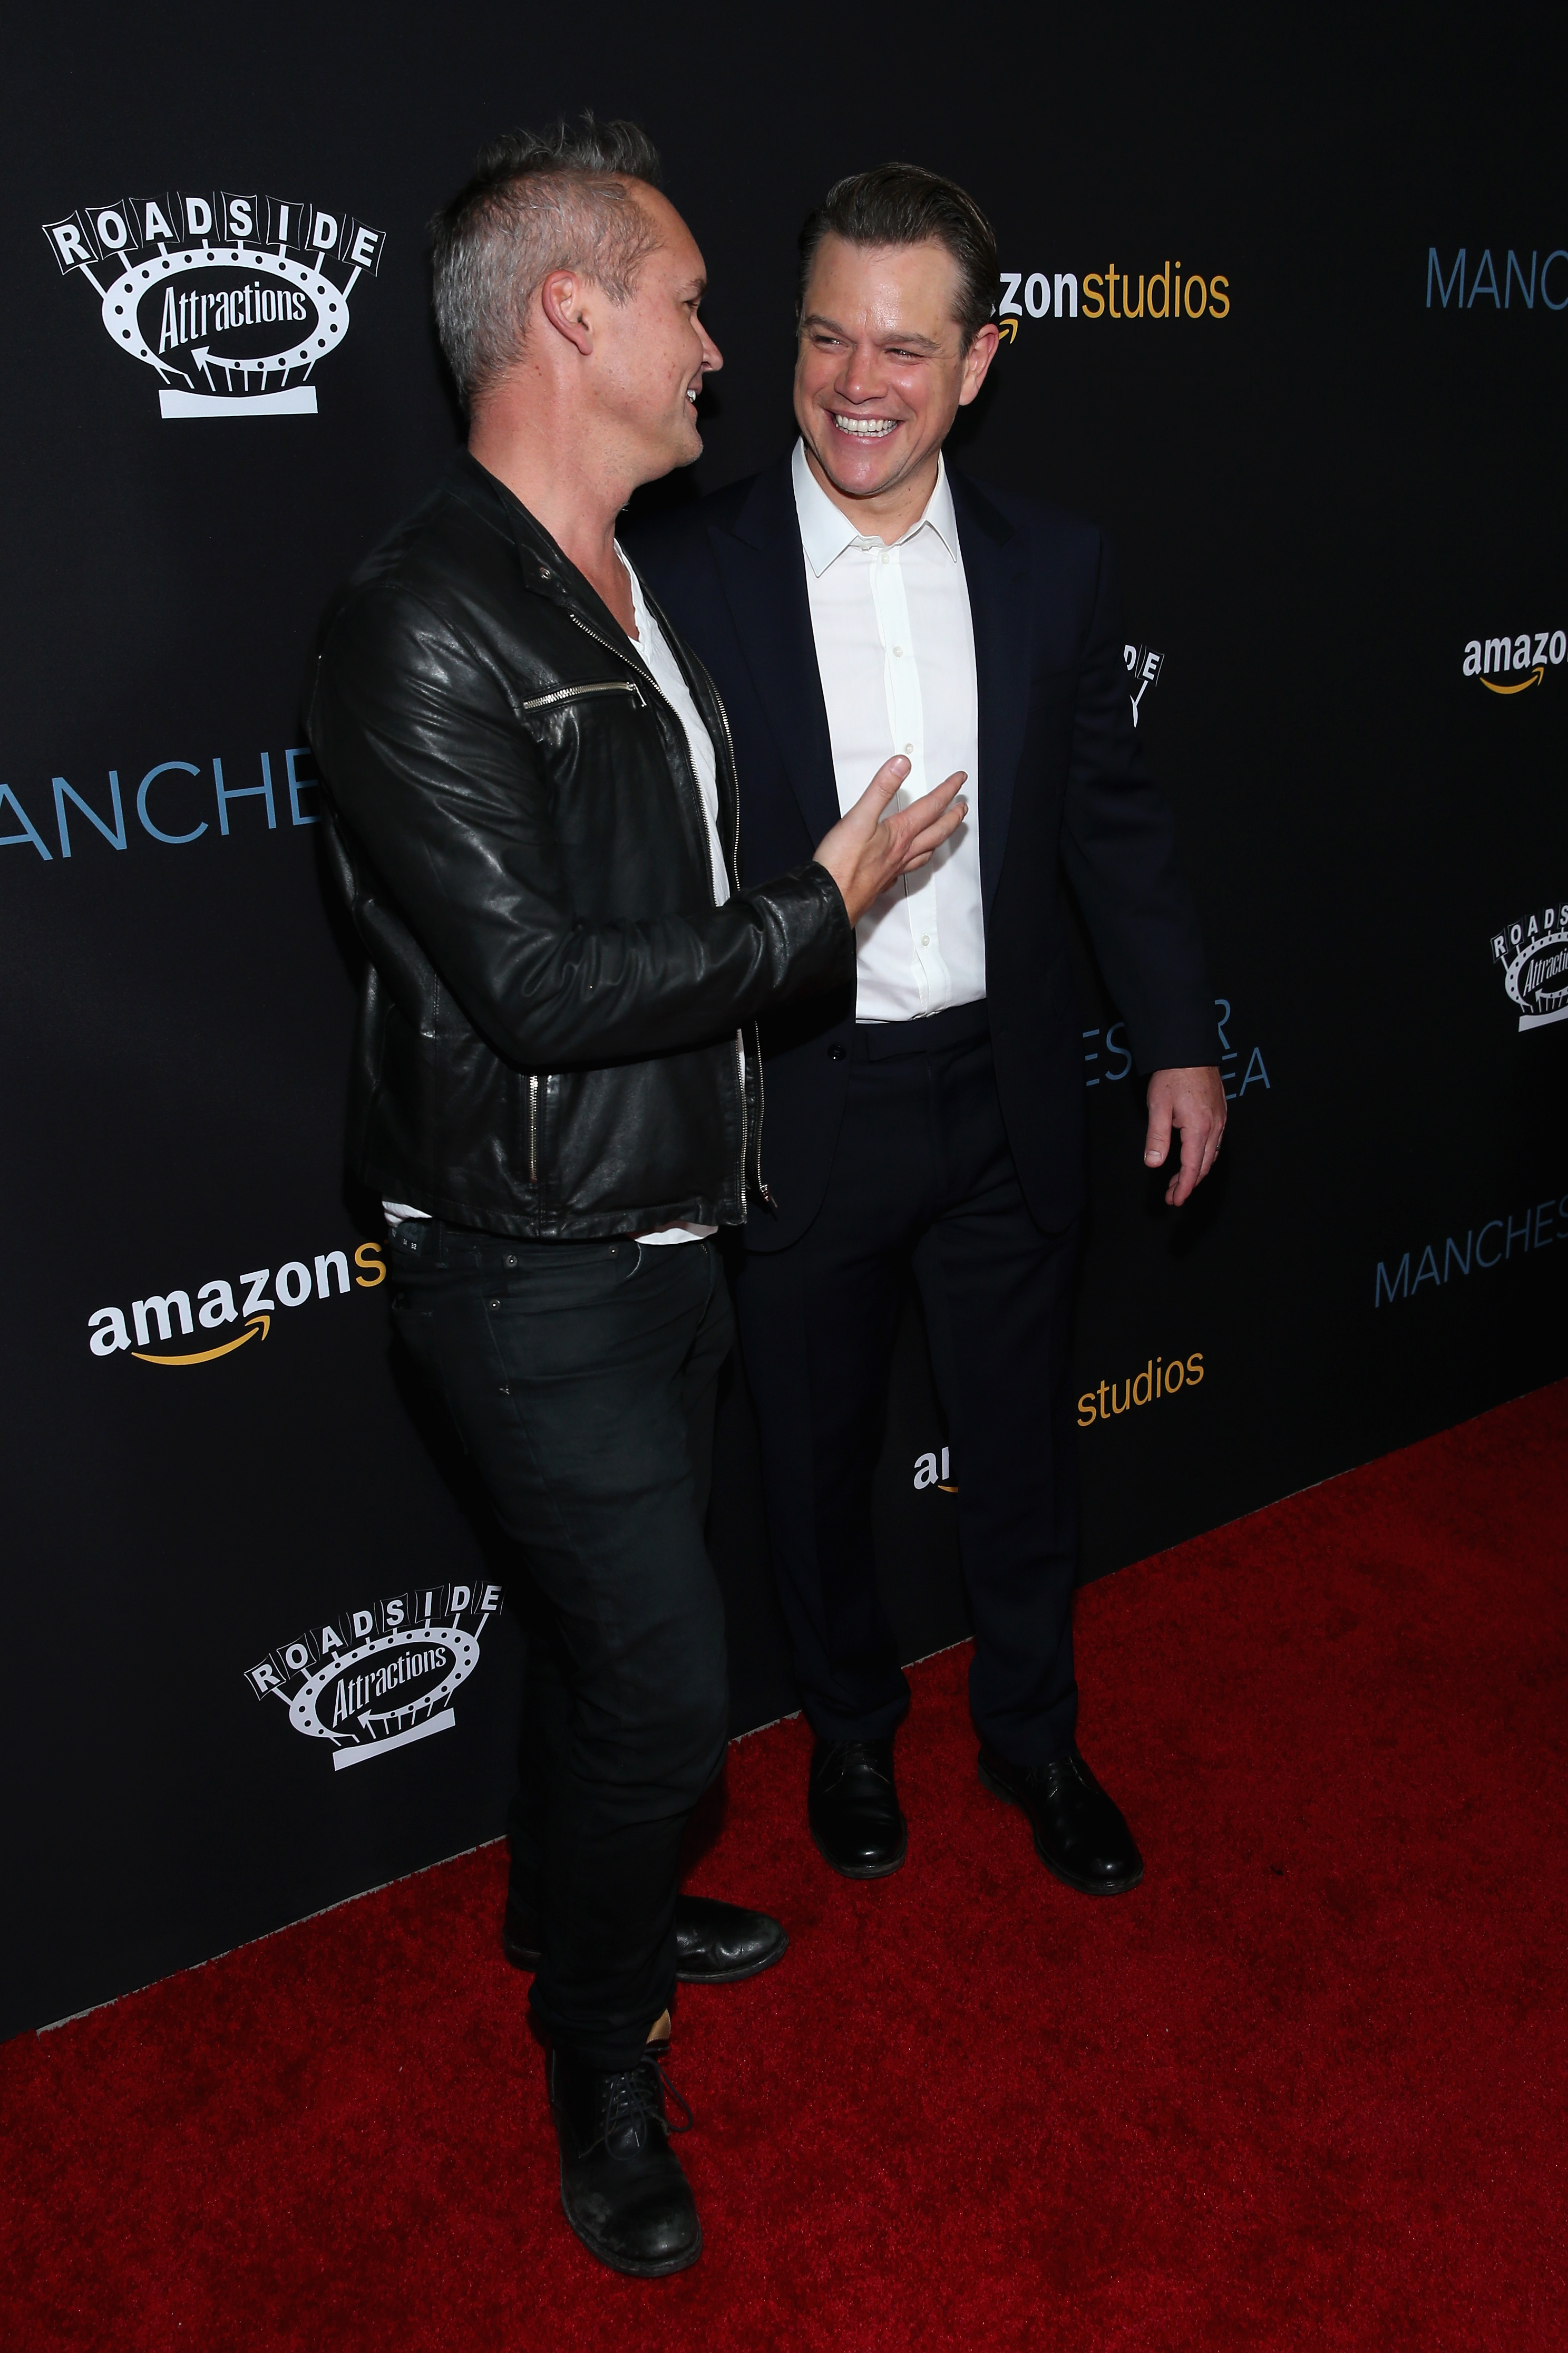 """Price and actor Matt Damon attend the premiere of Amazon Studios' """"Manchester By The Sea"""" at Samuel Goldwyn Theater on November 14, 2016 in Beverly Hills, California. (Photo by Phillip Faraone/Getty Images)"""